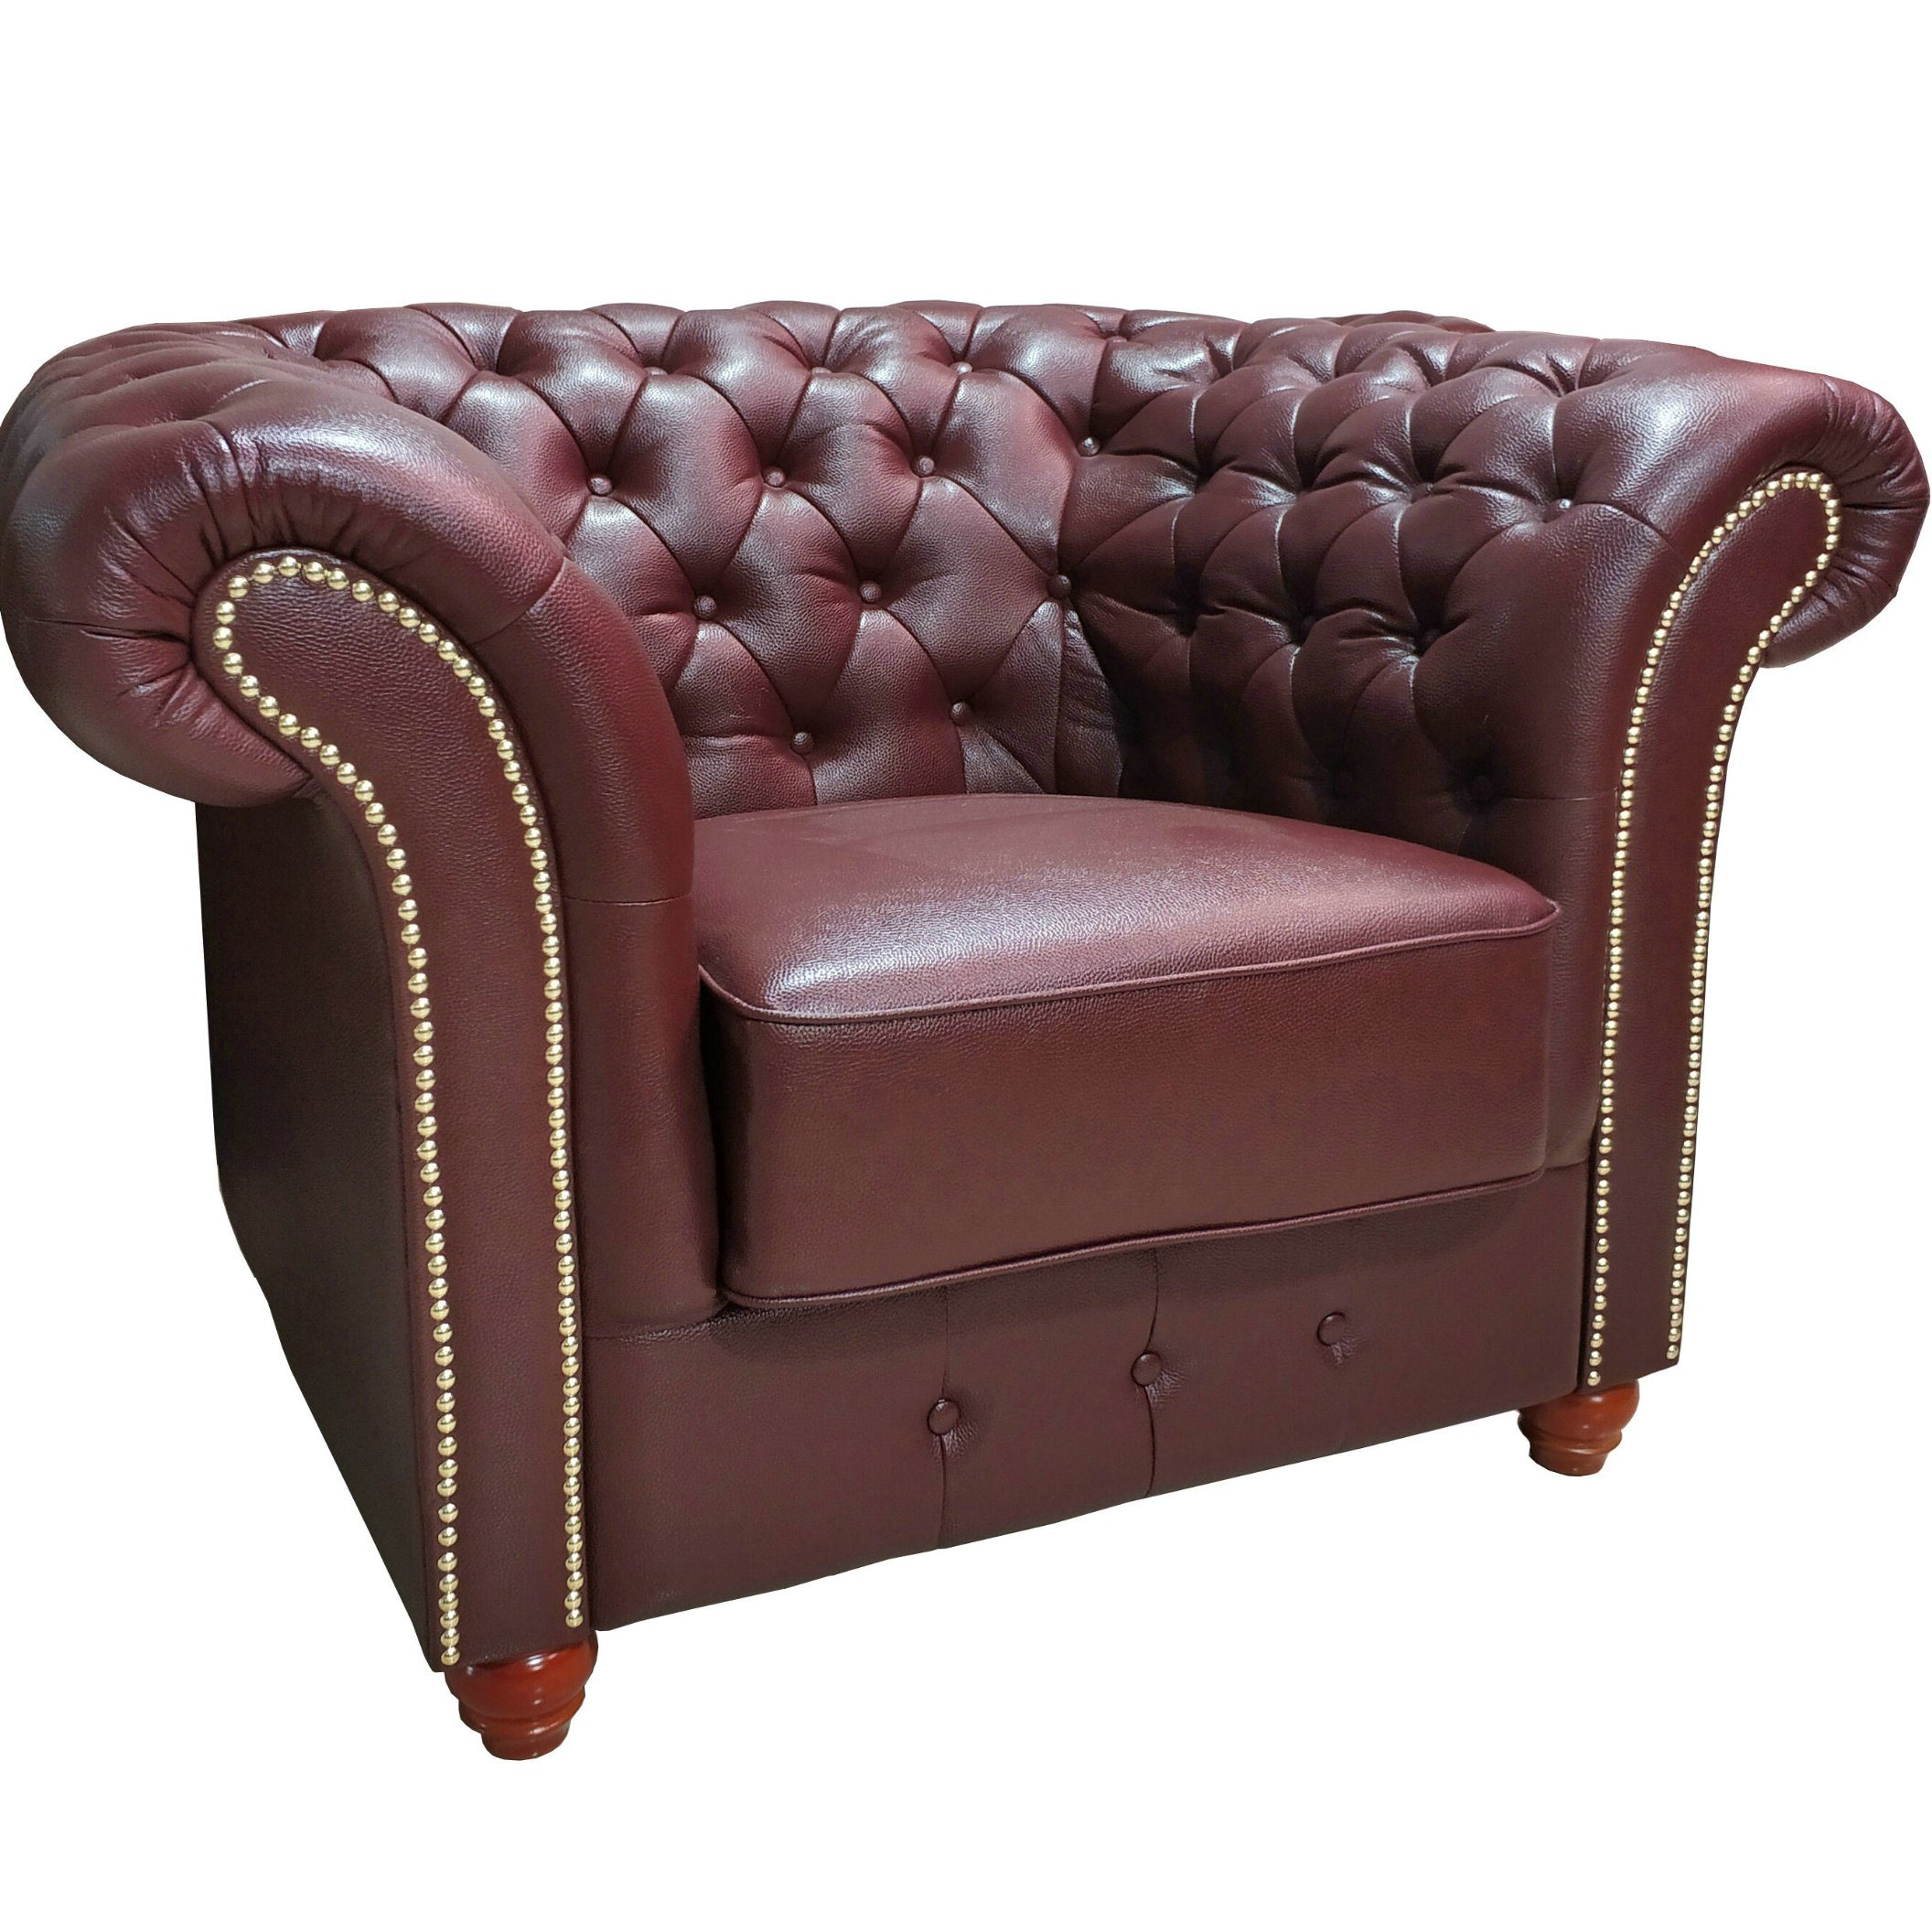 Chesterfield Lounge Sessel China Leather Chesterfield Furniture Leather Chesterfield Furniture Manufacturers Suppliers Made In China